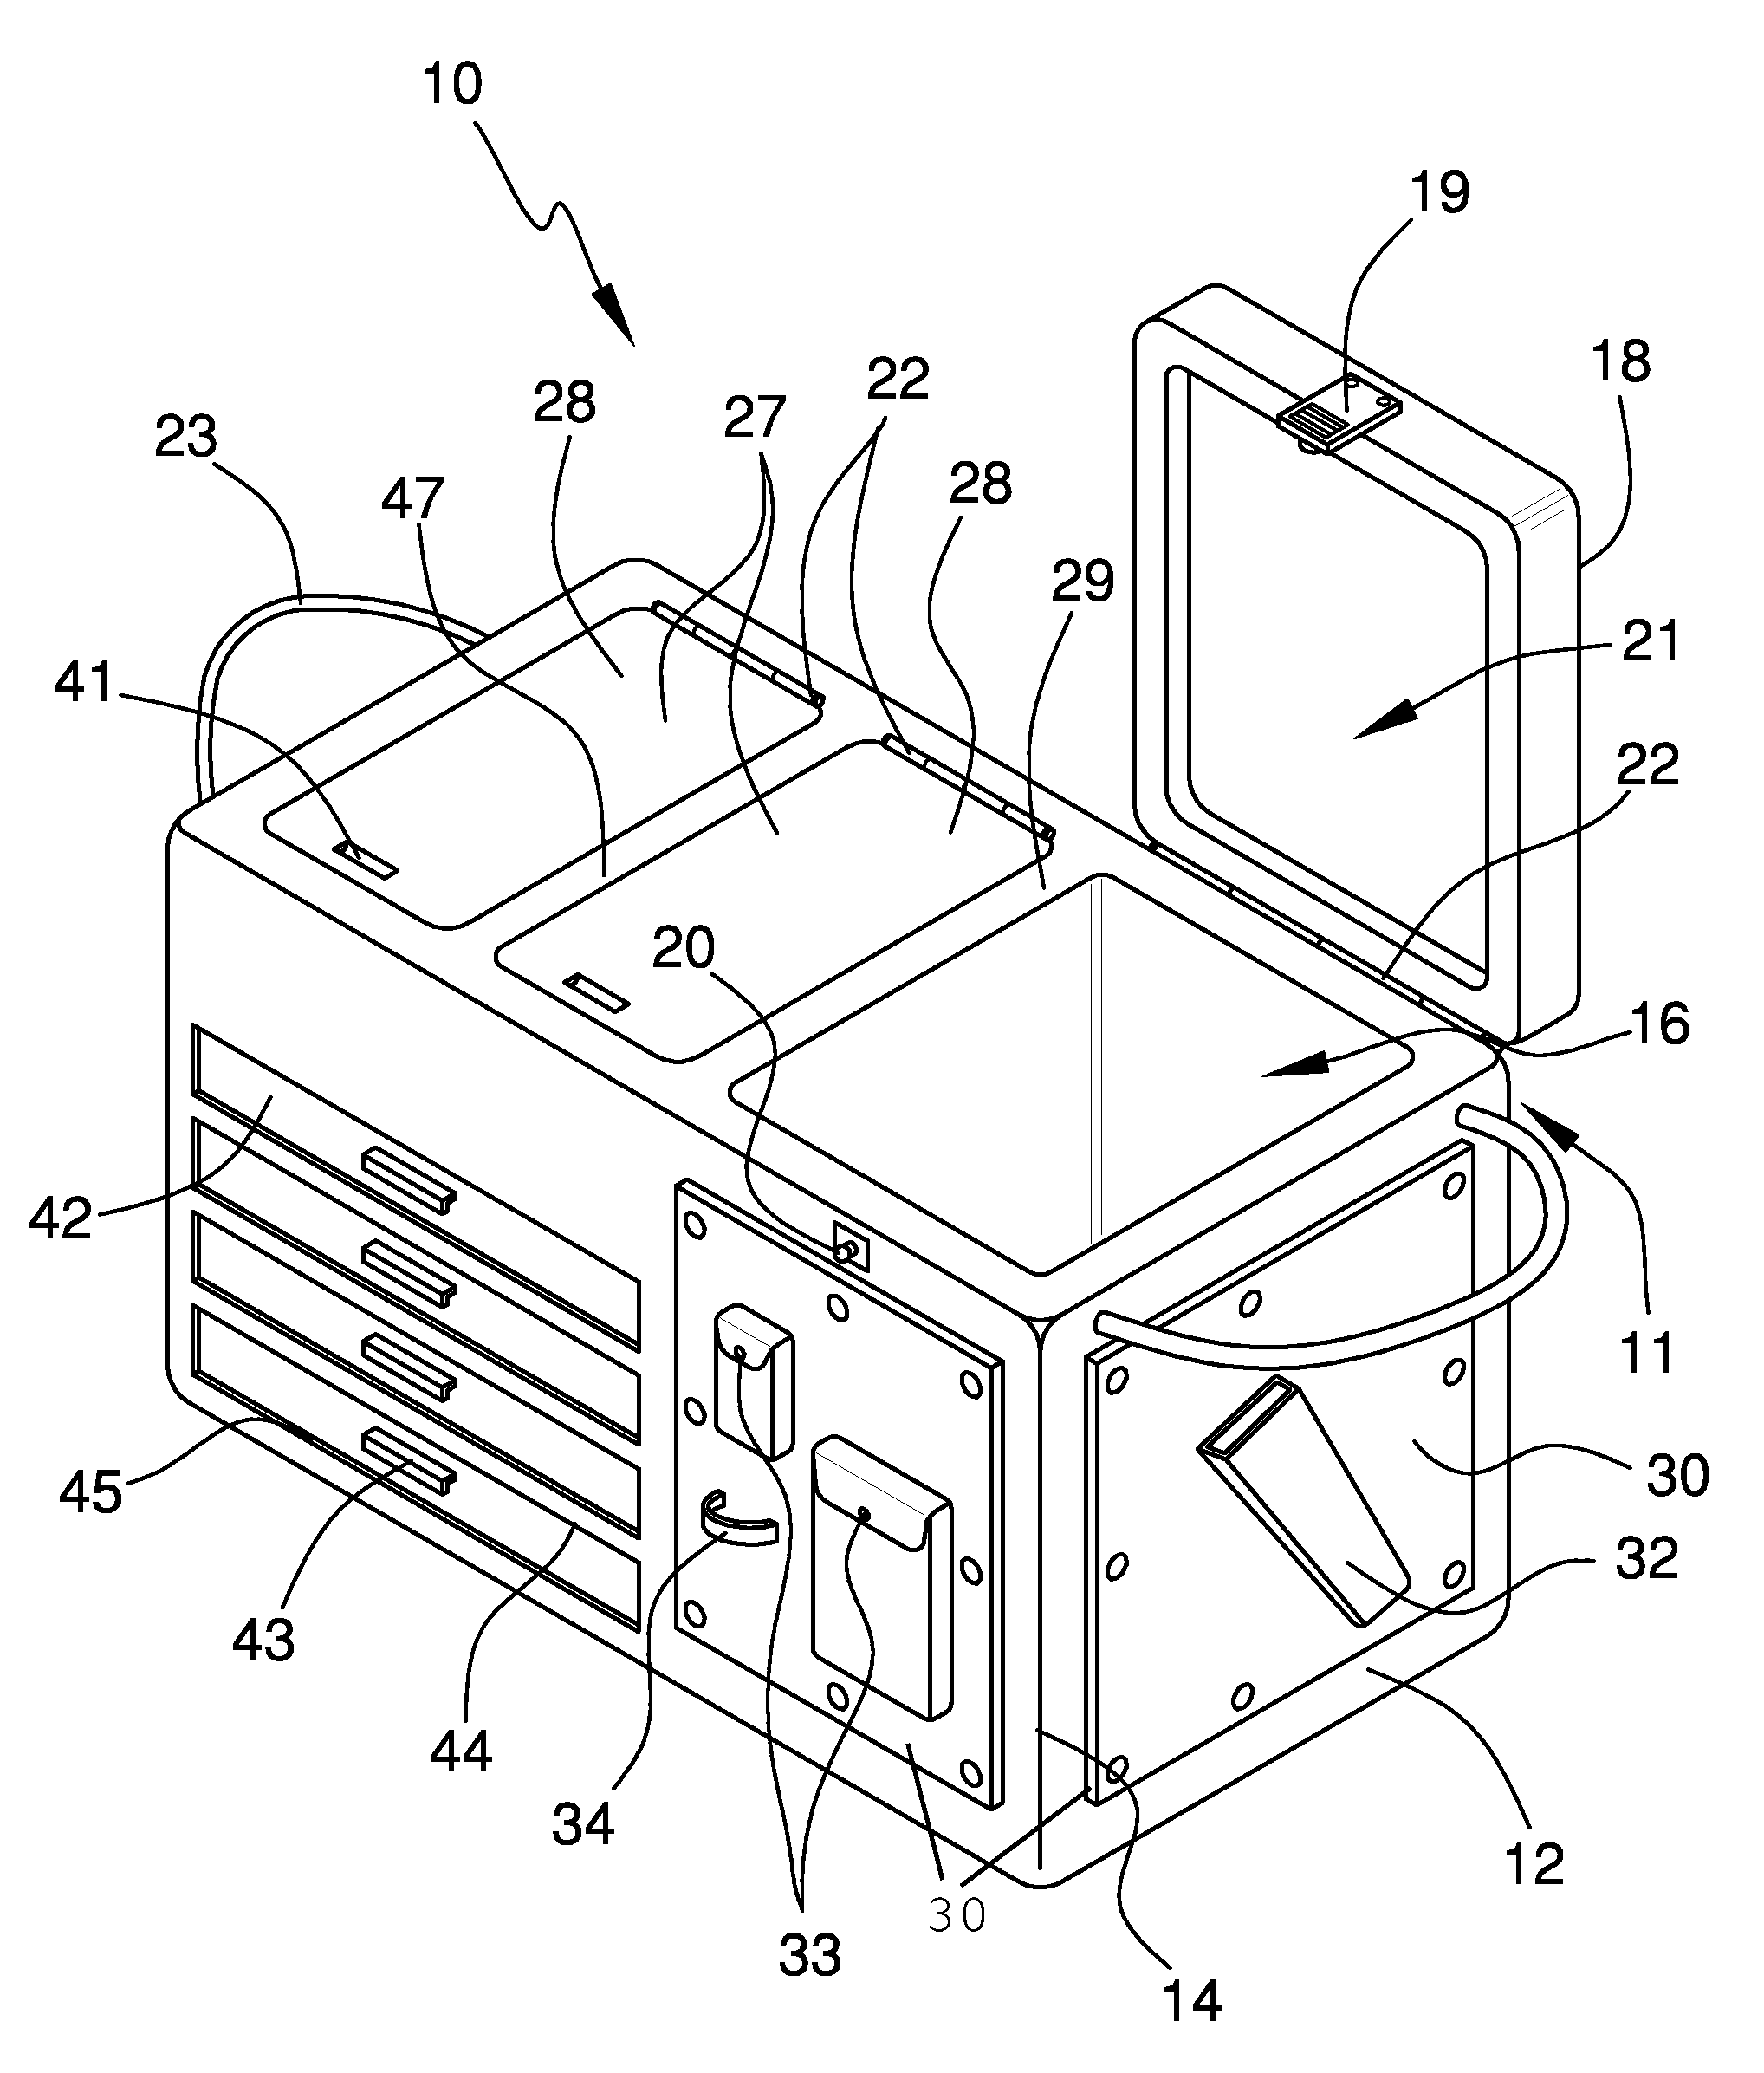 US07415794 20080826 D00000 patent us7415794 portable cooler and tackle box google patents 2001 hyundai xg300 fuse box location at soozxer.org